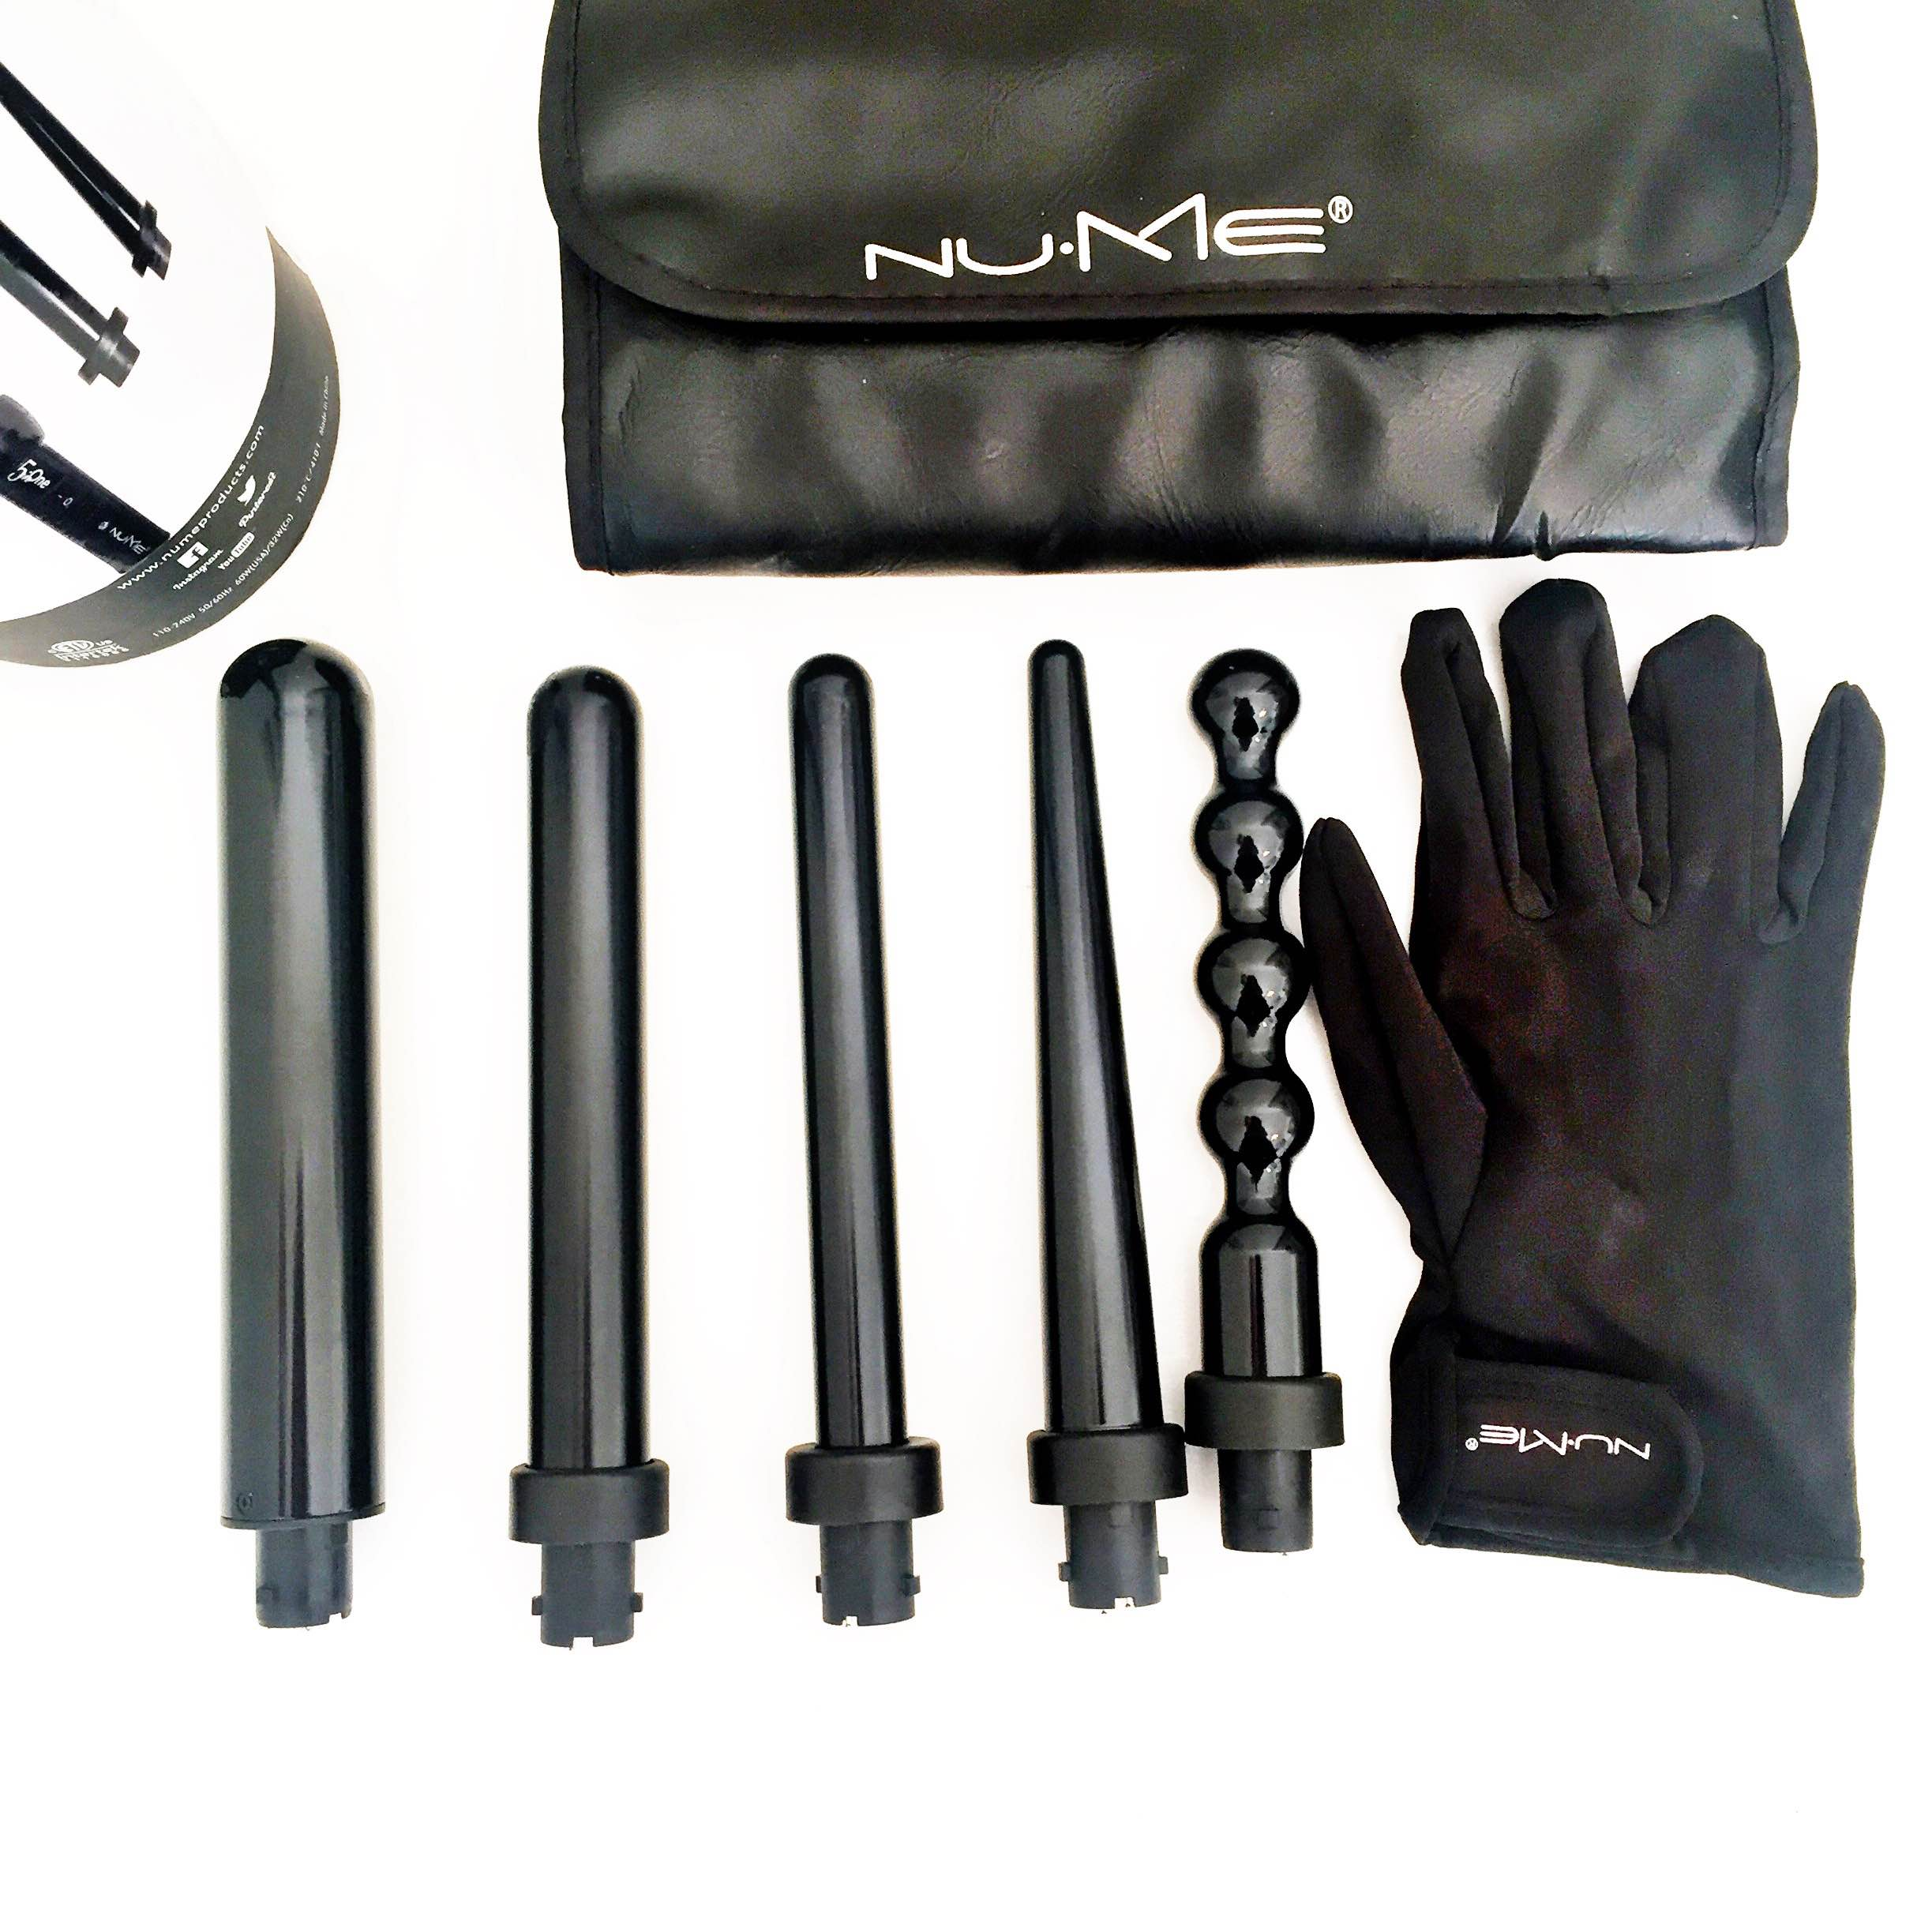 Jan 10,  · I'm really wanting the NuMe curling wand but I can't find it anywhere but onlineStatus: Resolved.